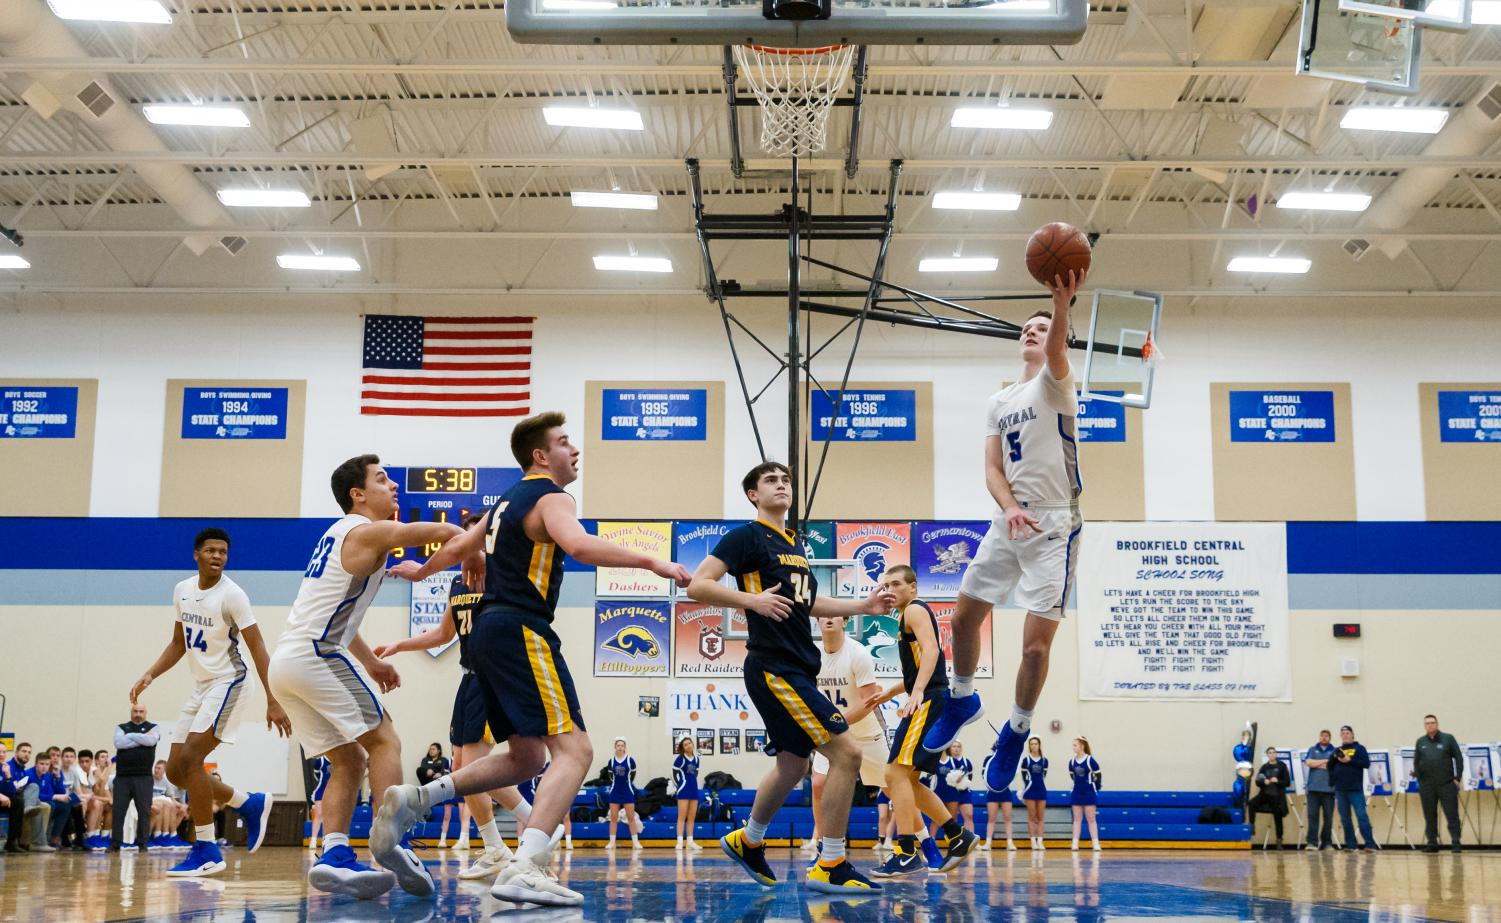 Cola Nau ('19) drives to the basket against Marquette University. he has committed to Hillsdale College to further pursue his basketball career.